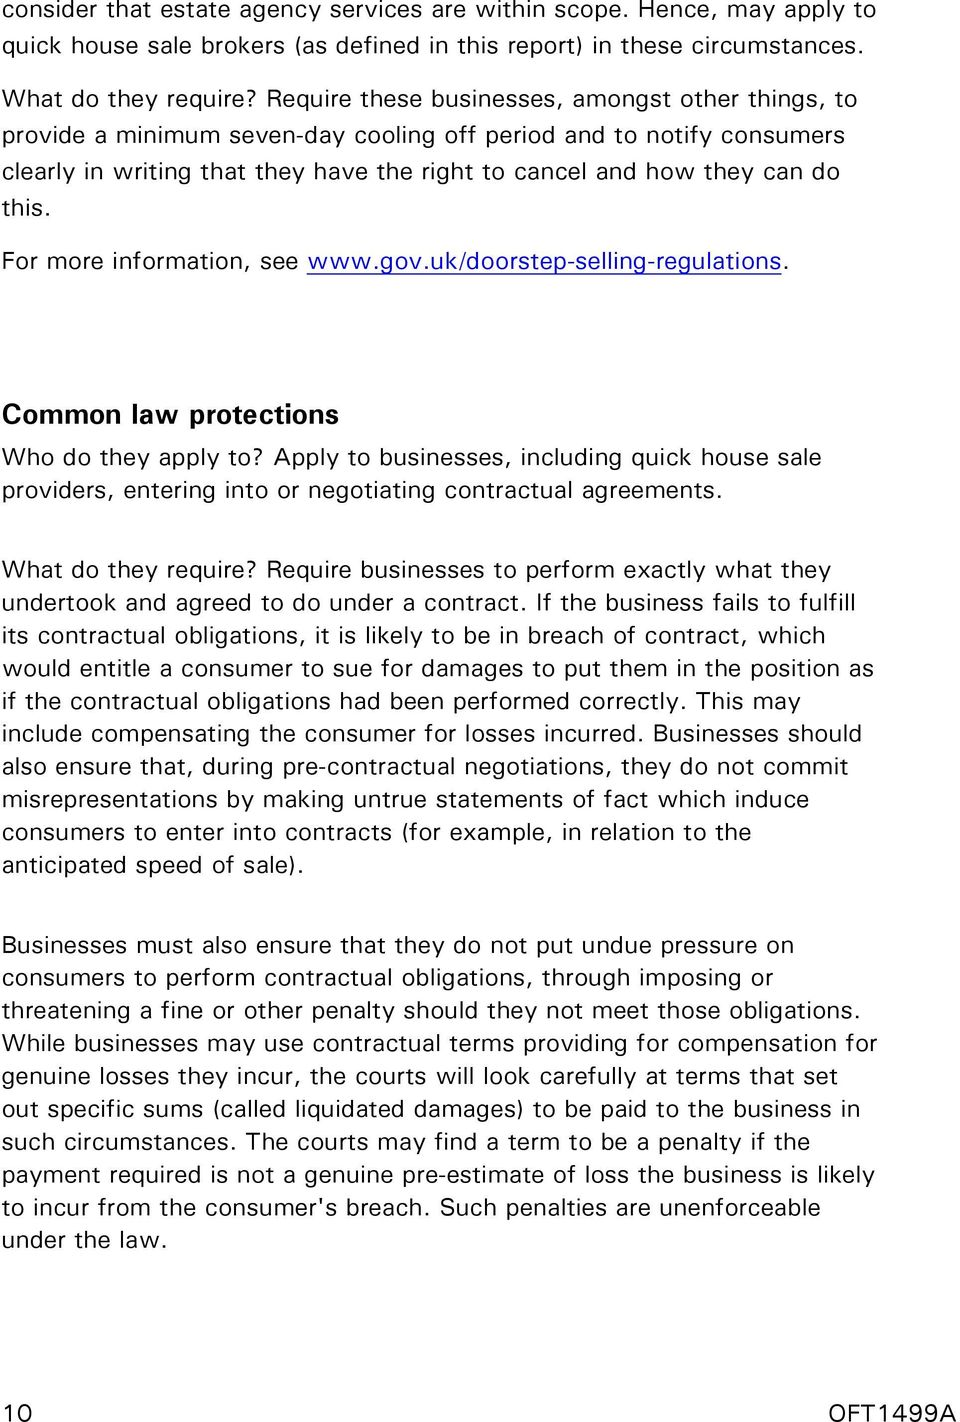 this. For more information, see www.gov.uk/doorstep-selling-regulations. Common law protections Who do they apply to?